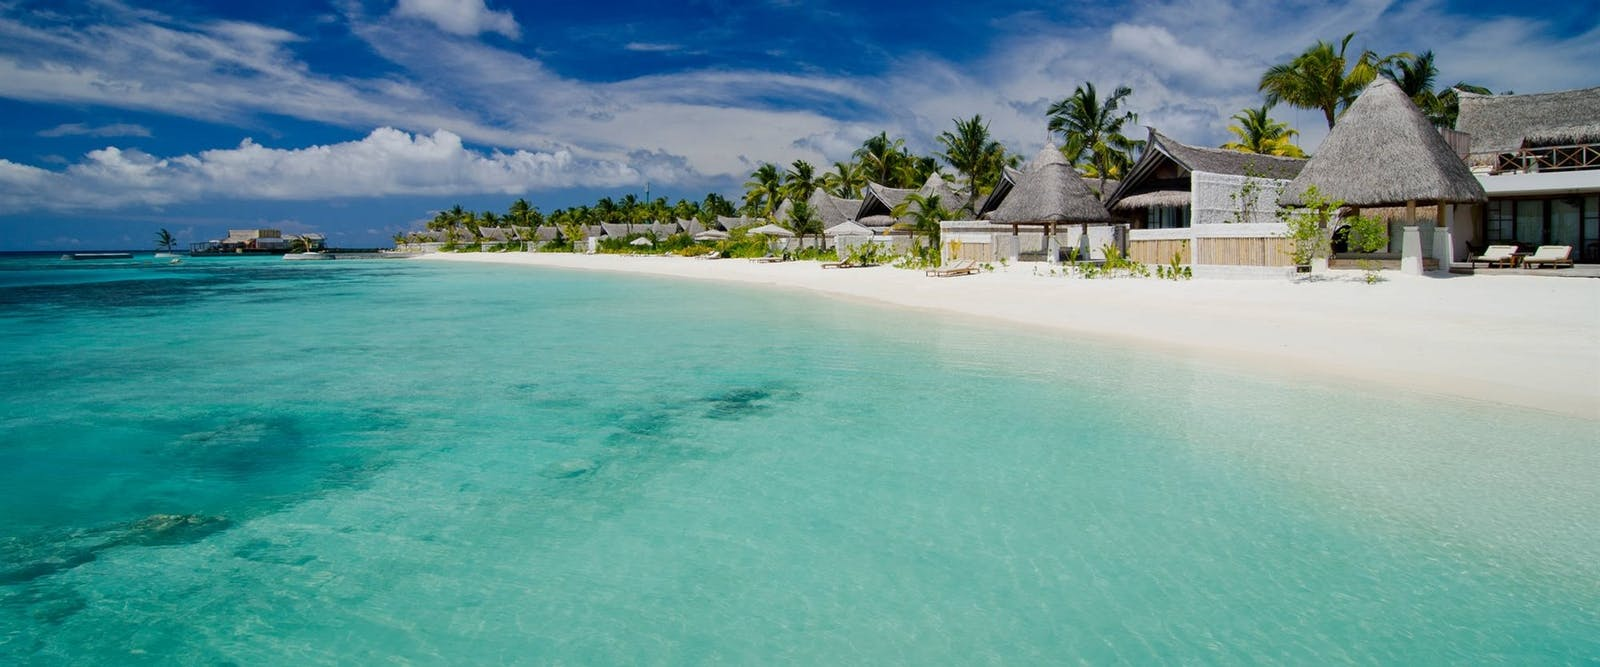 Beach Villas at Jumeirah Vittaveli, Maldives